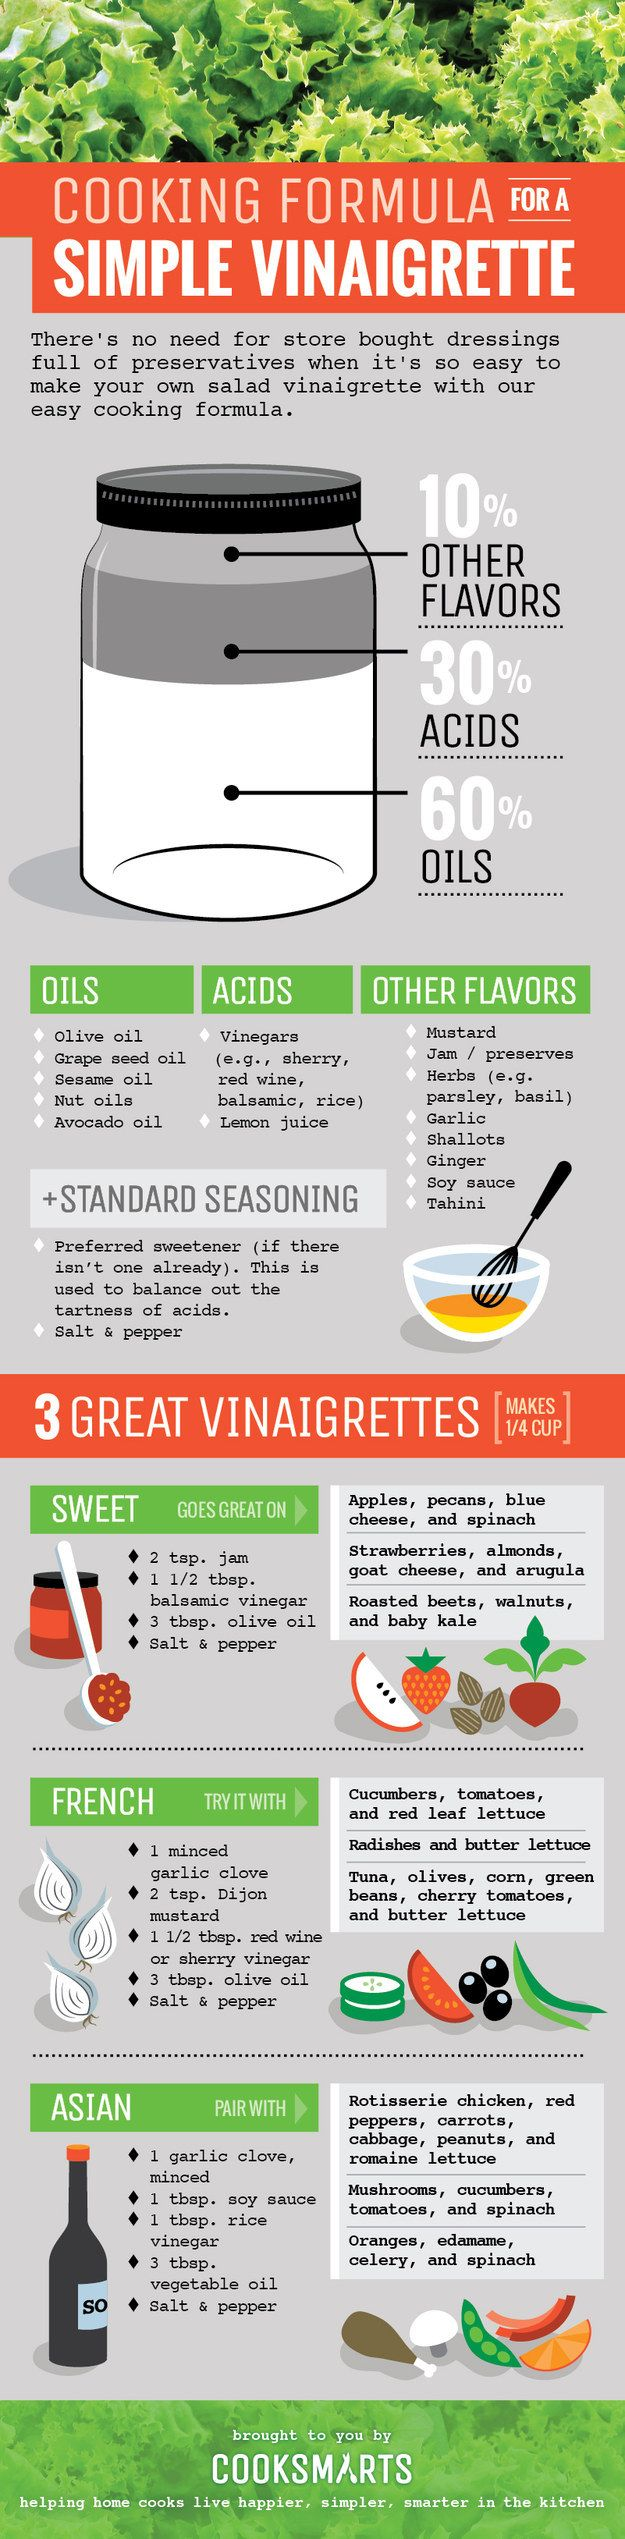 27 Diagrams That Make Cooking So Much Easier - Album on Imgur